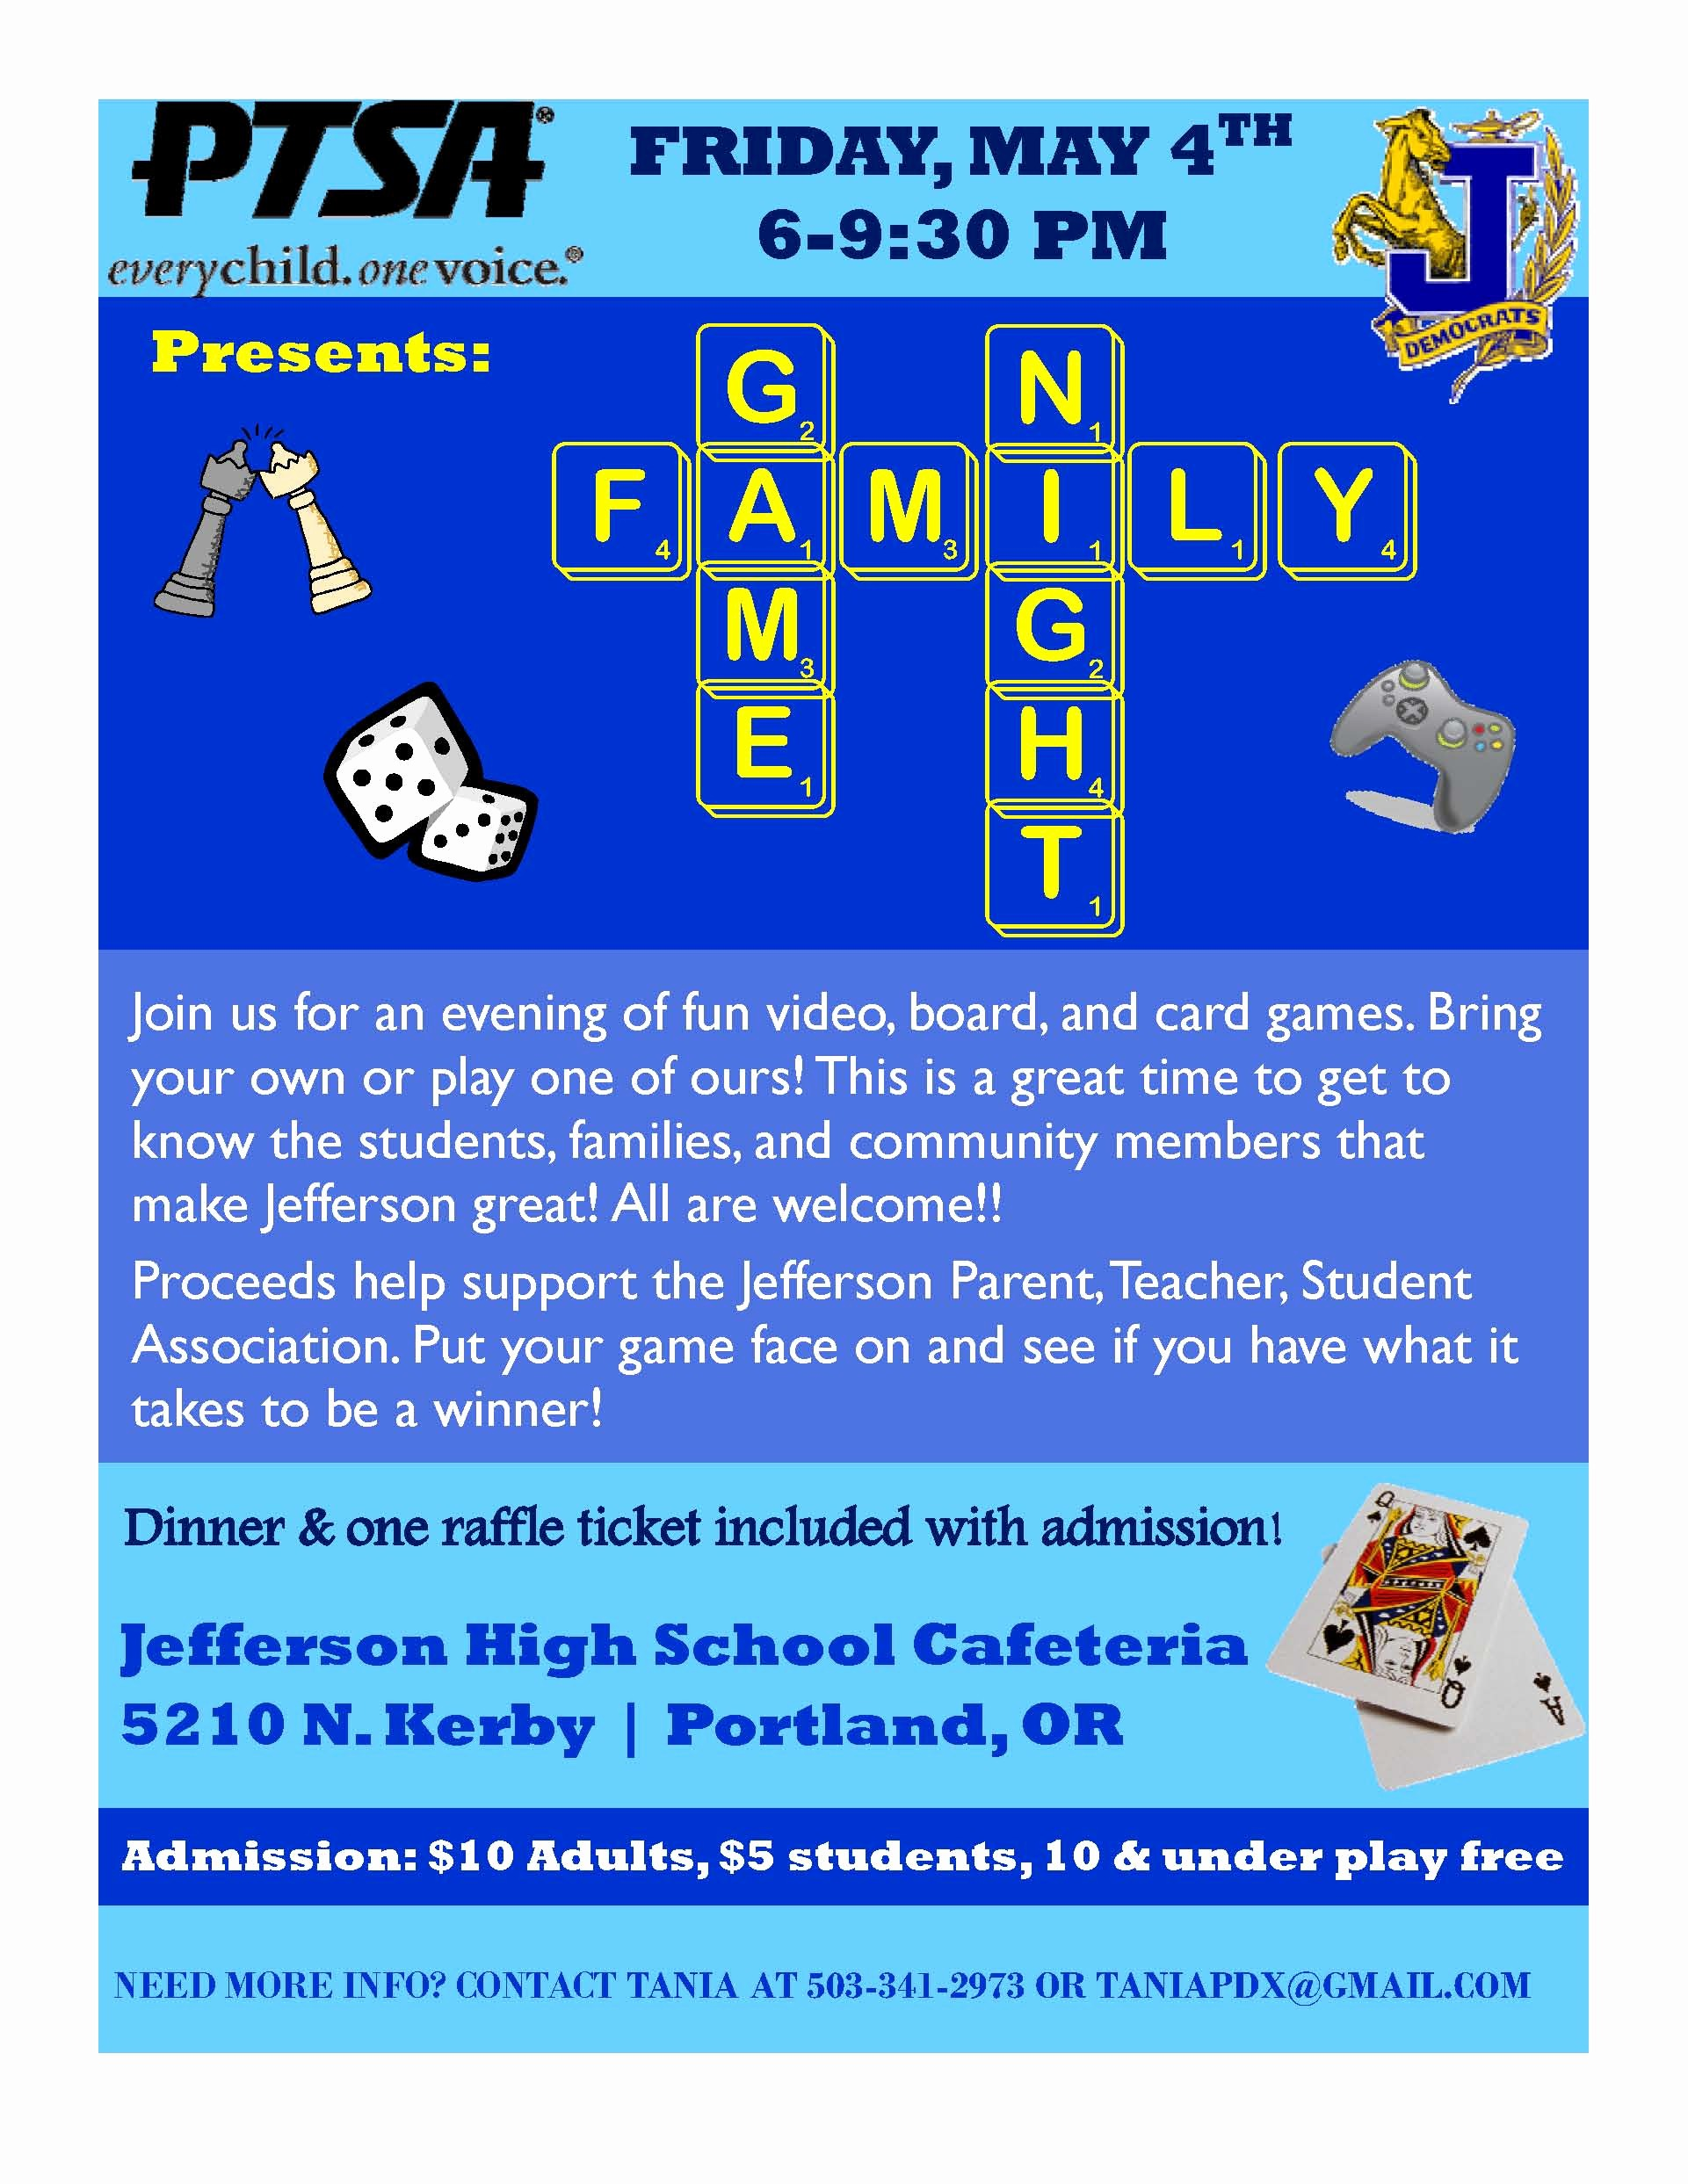 Board Game Night Flyer Template Lovely Jefferson High School